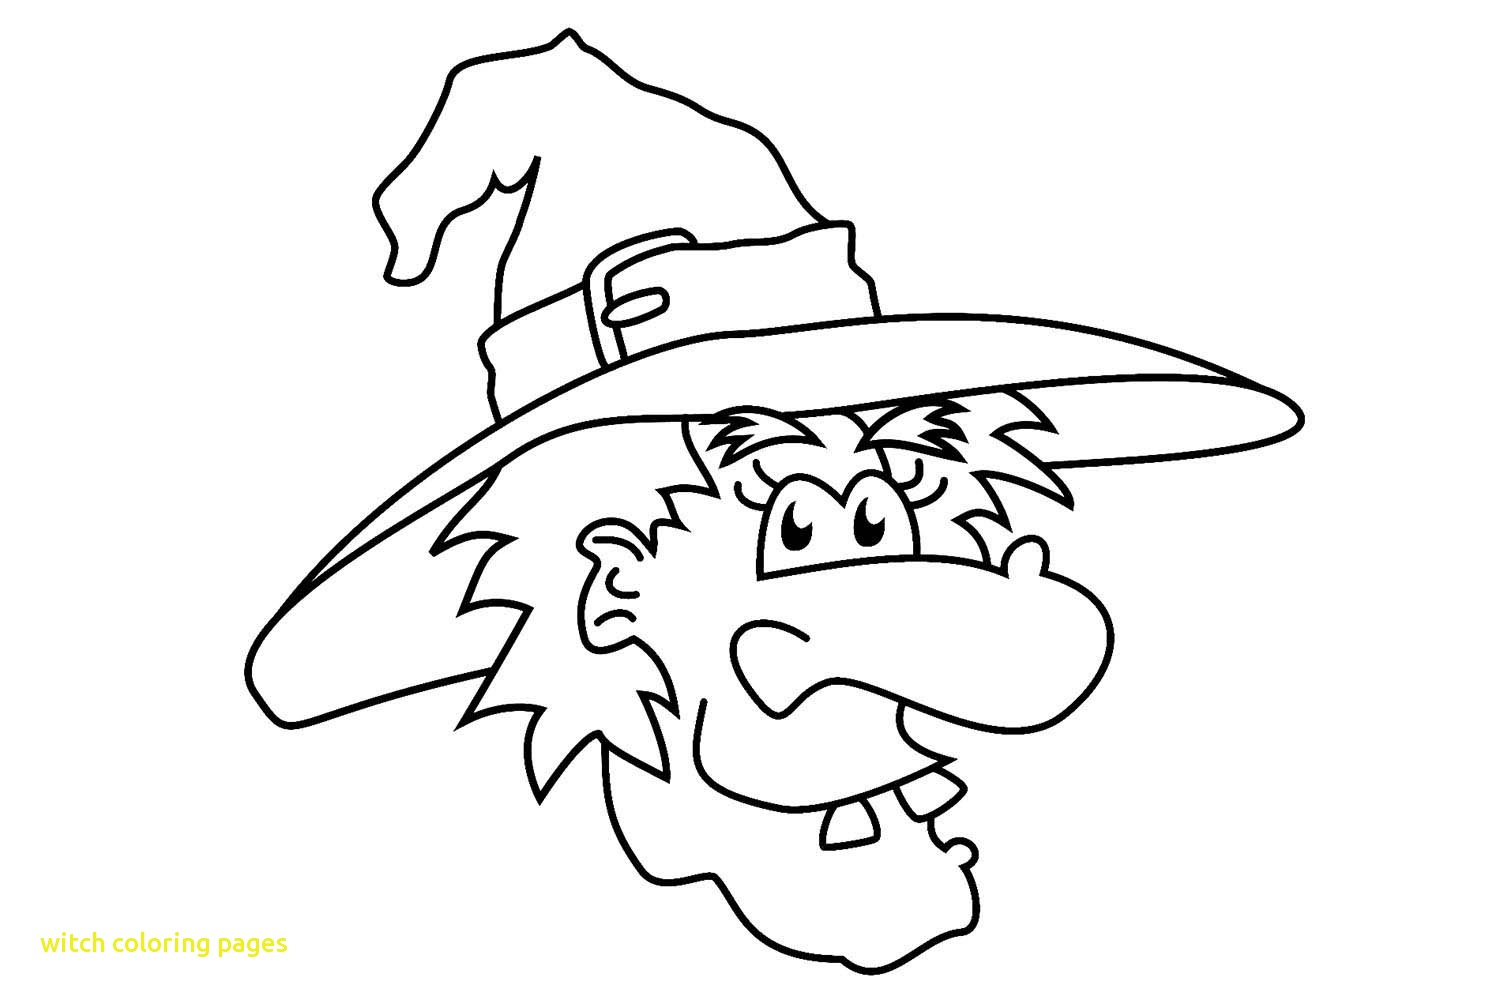 1500x1000 Witch Coloring Pages With Printable Witch Coloring Pages